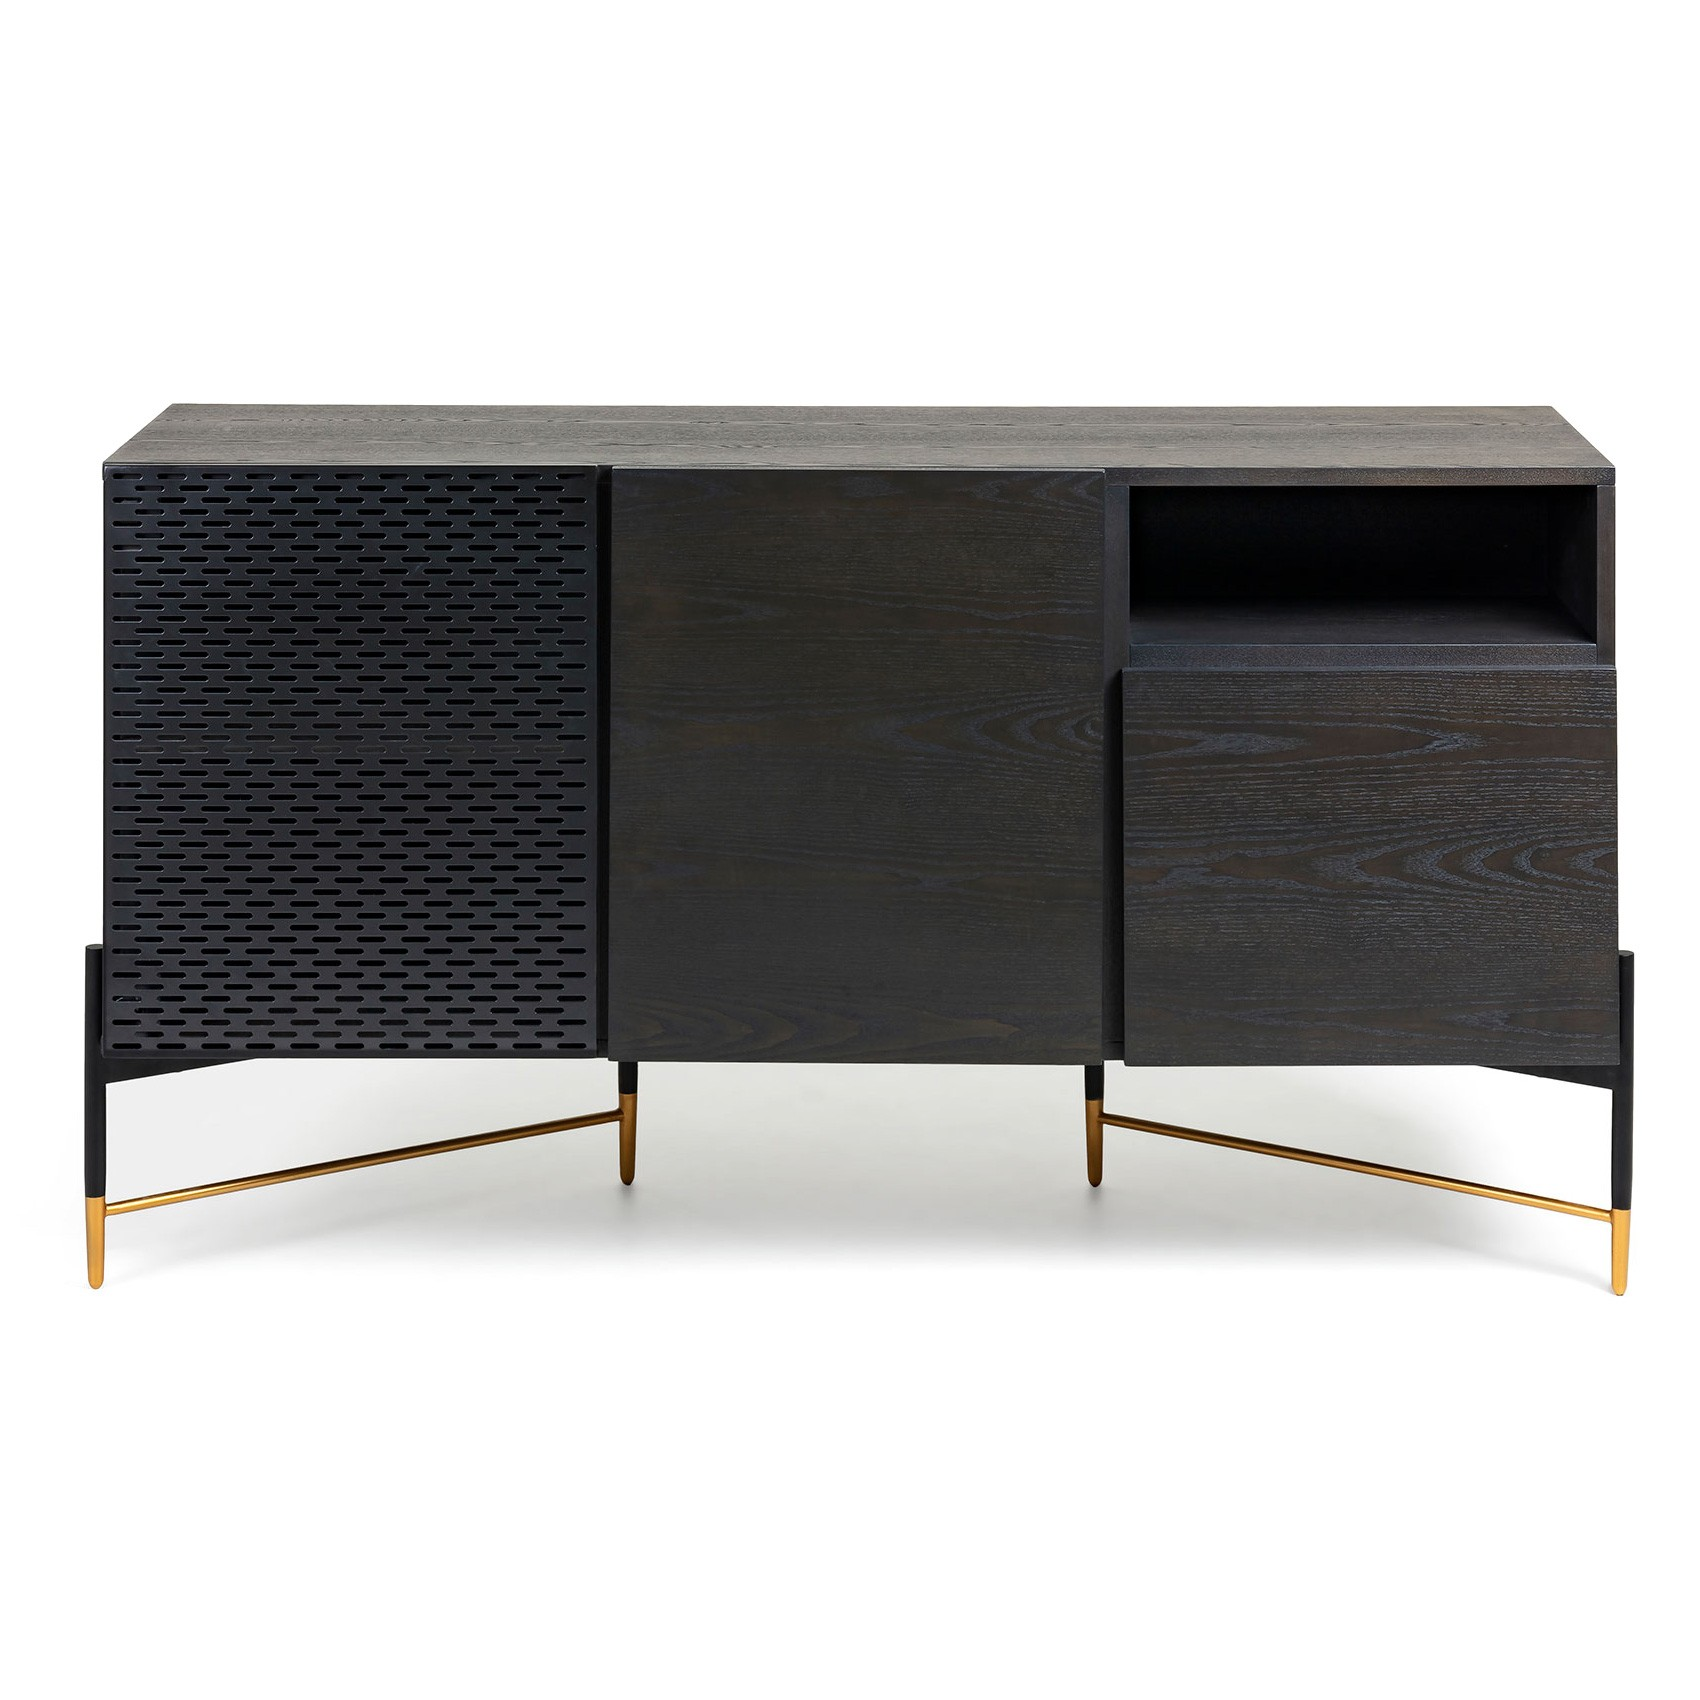 Macleod Ashwood 3 Door Sideboard, 159cm